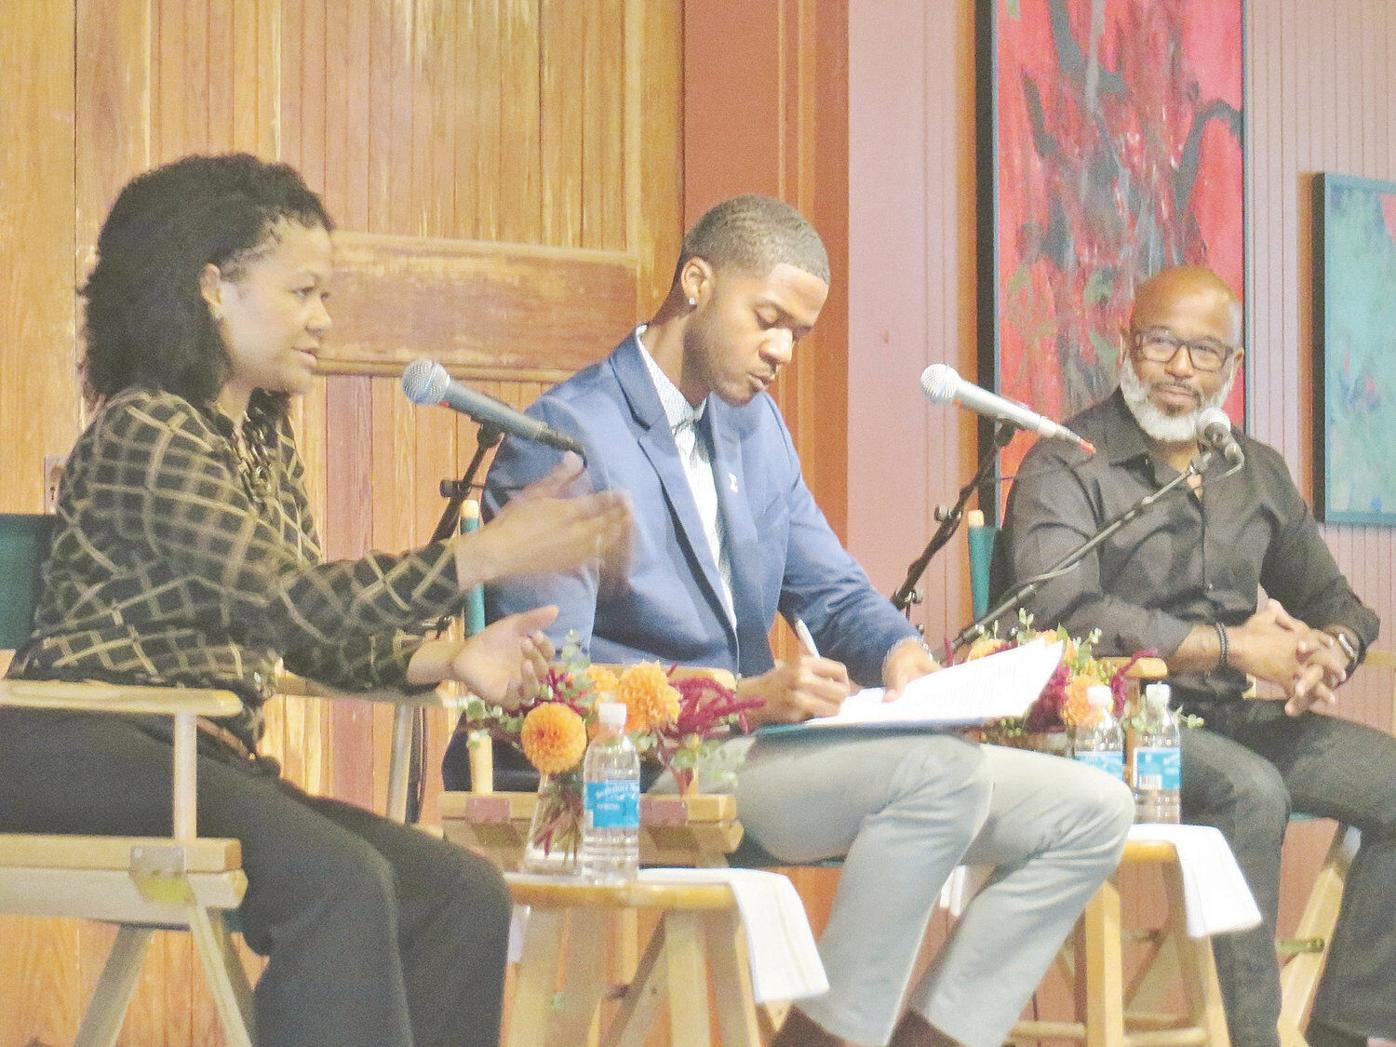 REPRESENT! forum at The Mount highlights need for more diversity in everyday life